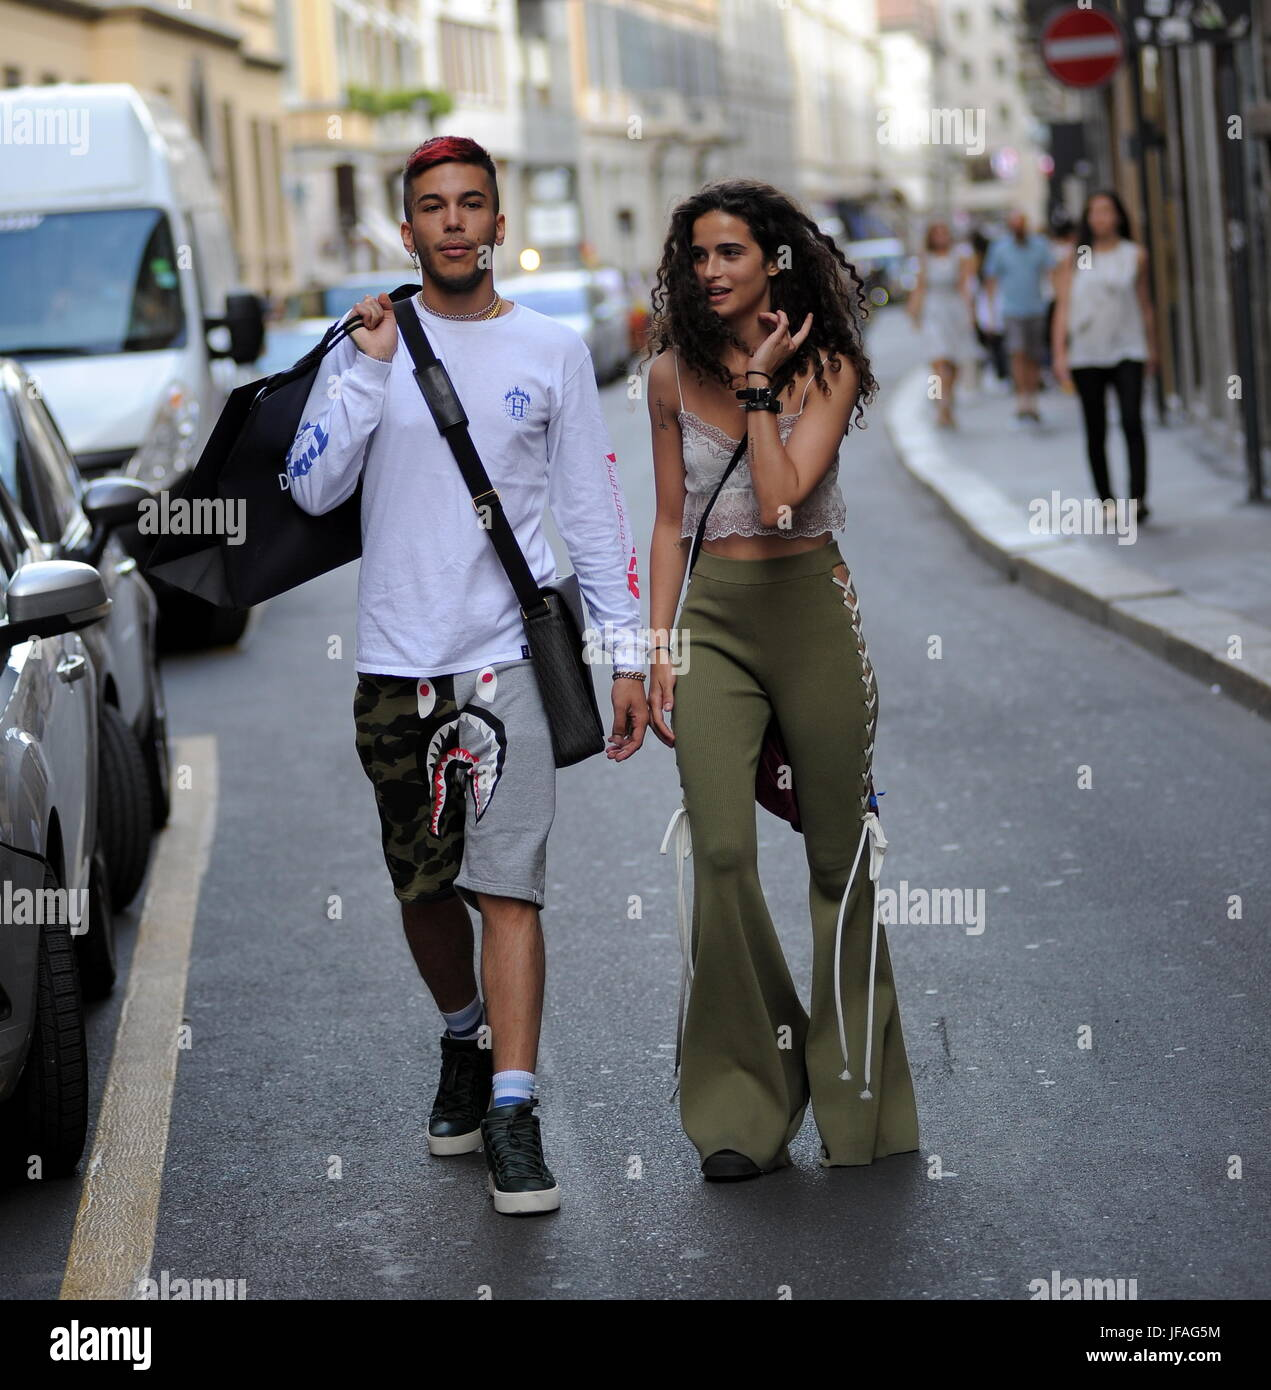 Sfera Online Shop Deutschland Milan Chiara Scelsi And Sfera Shopping Rapper Together In The